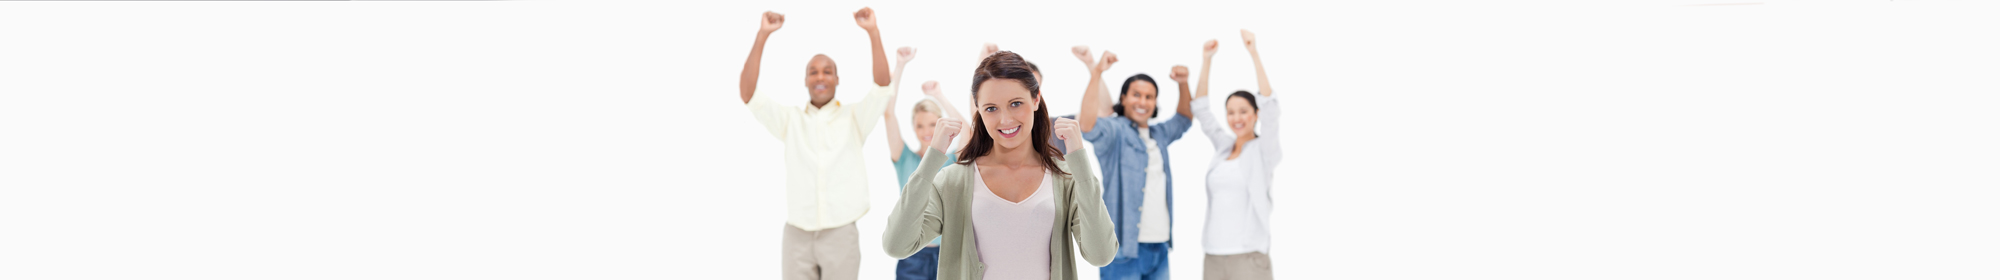 group of happy diverse counsellors with fists raised in the air